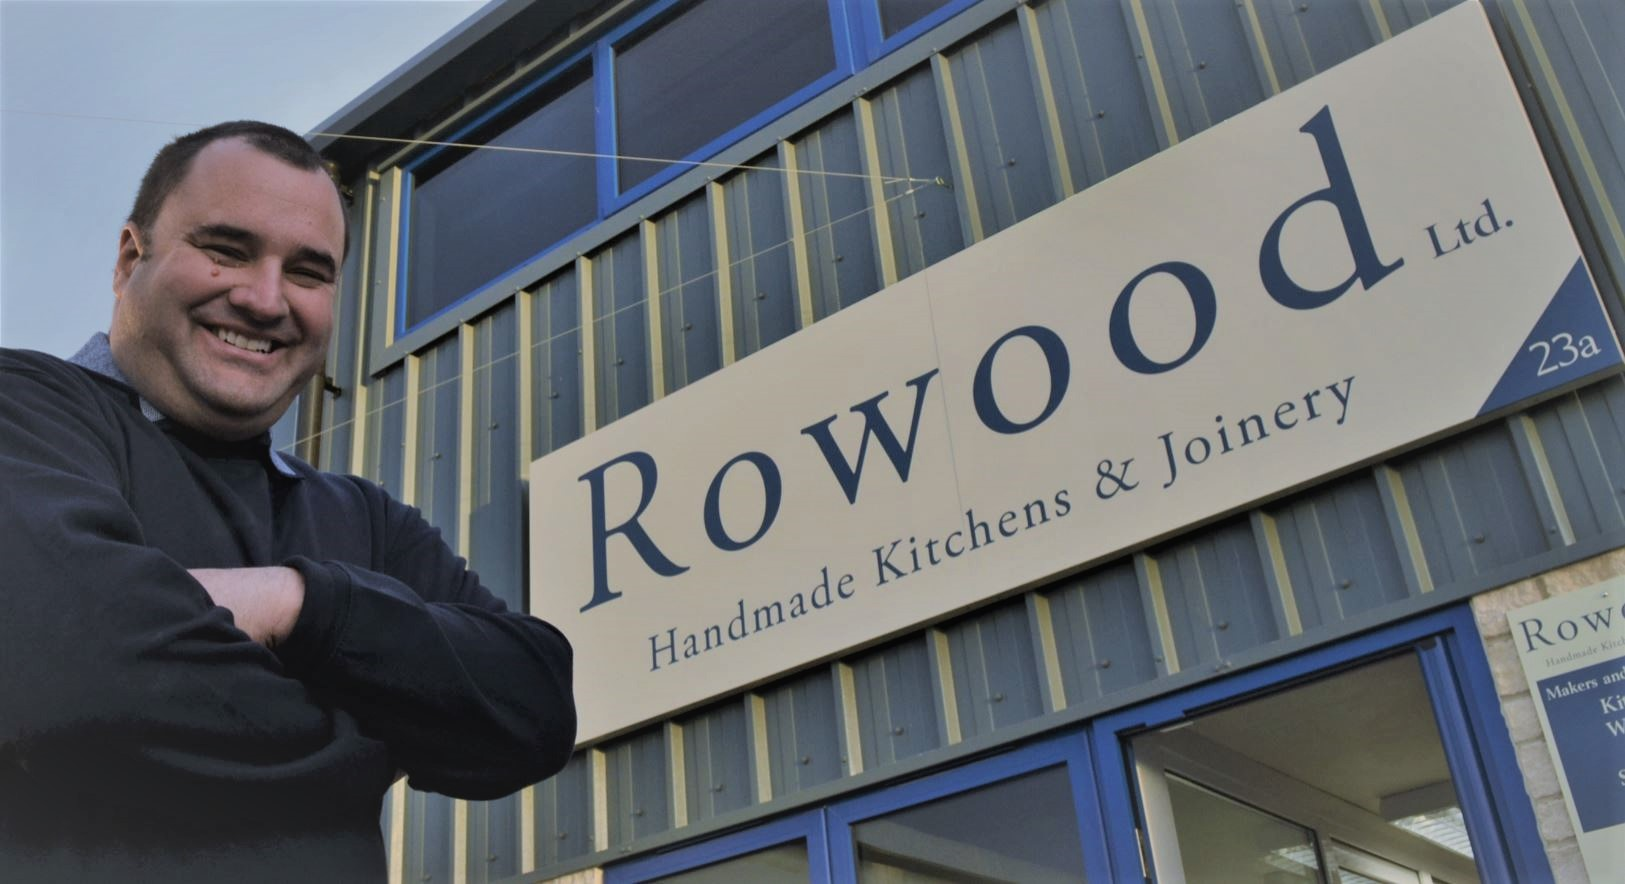 Nick Rowland, Director of RowoodLtd